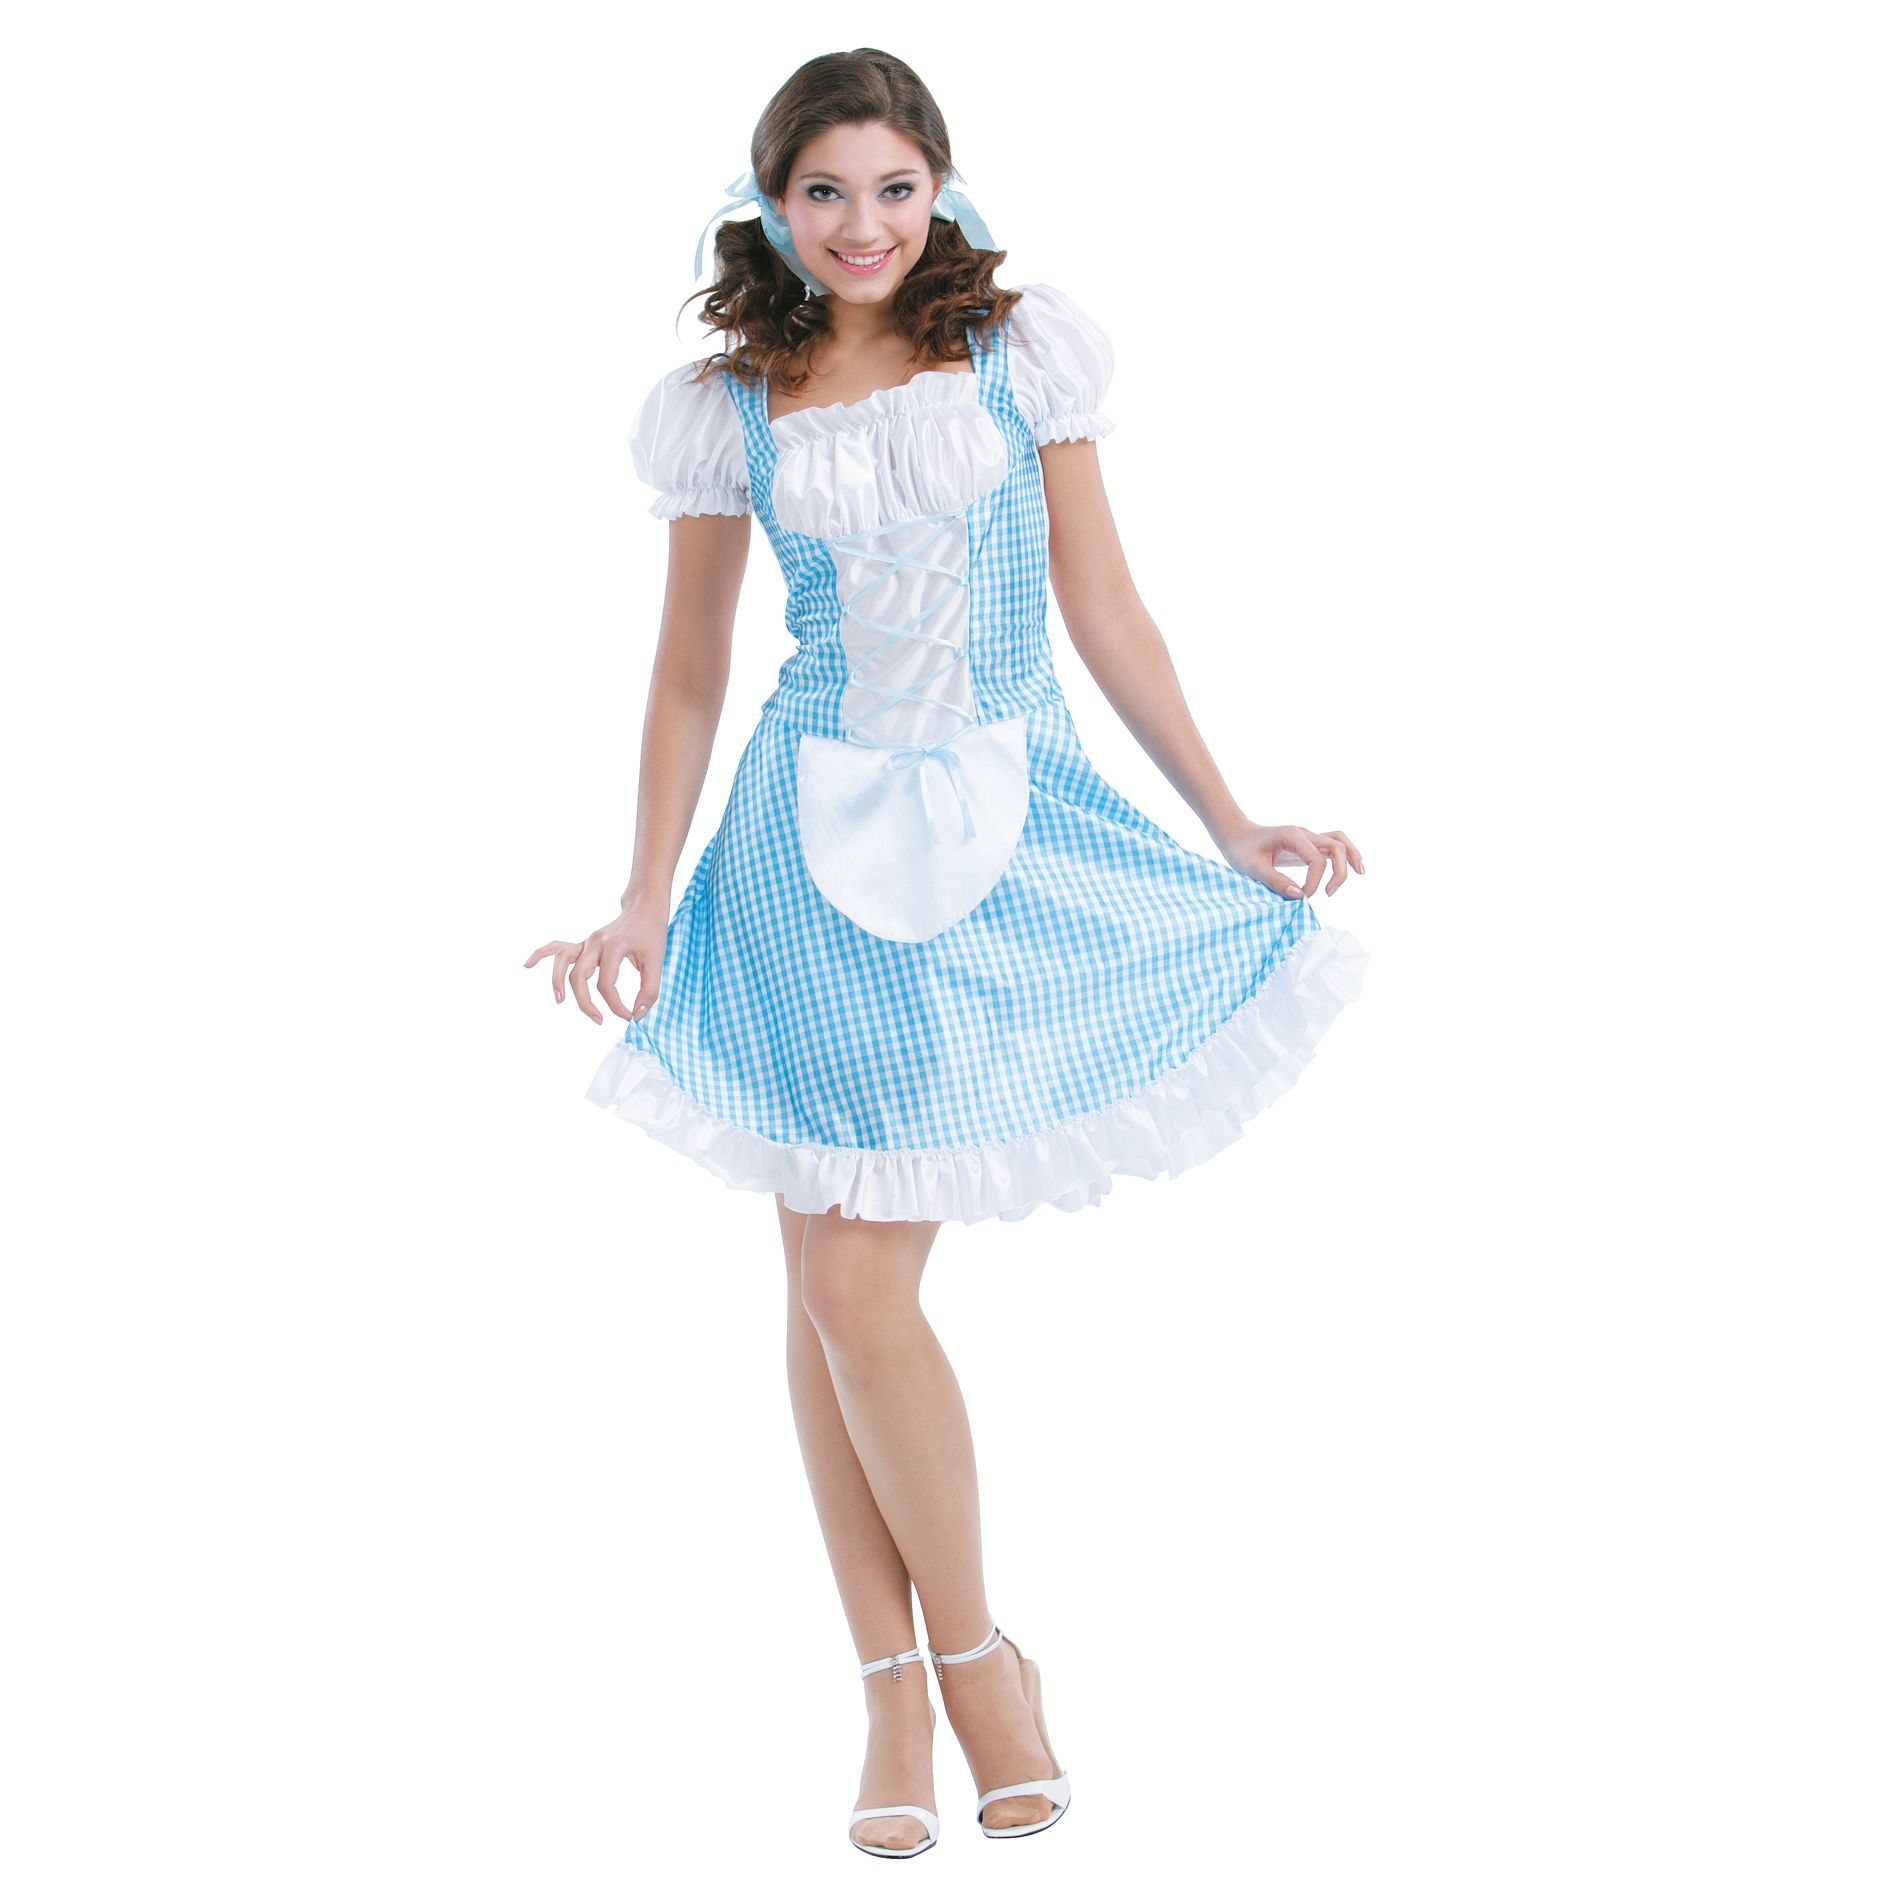 collection of kmart adult halloween costumes - new style christmas